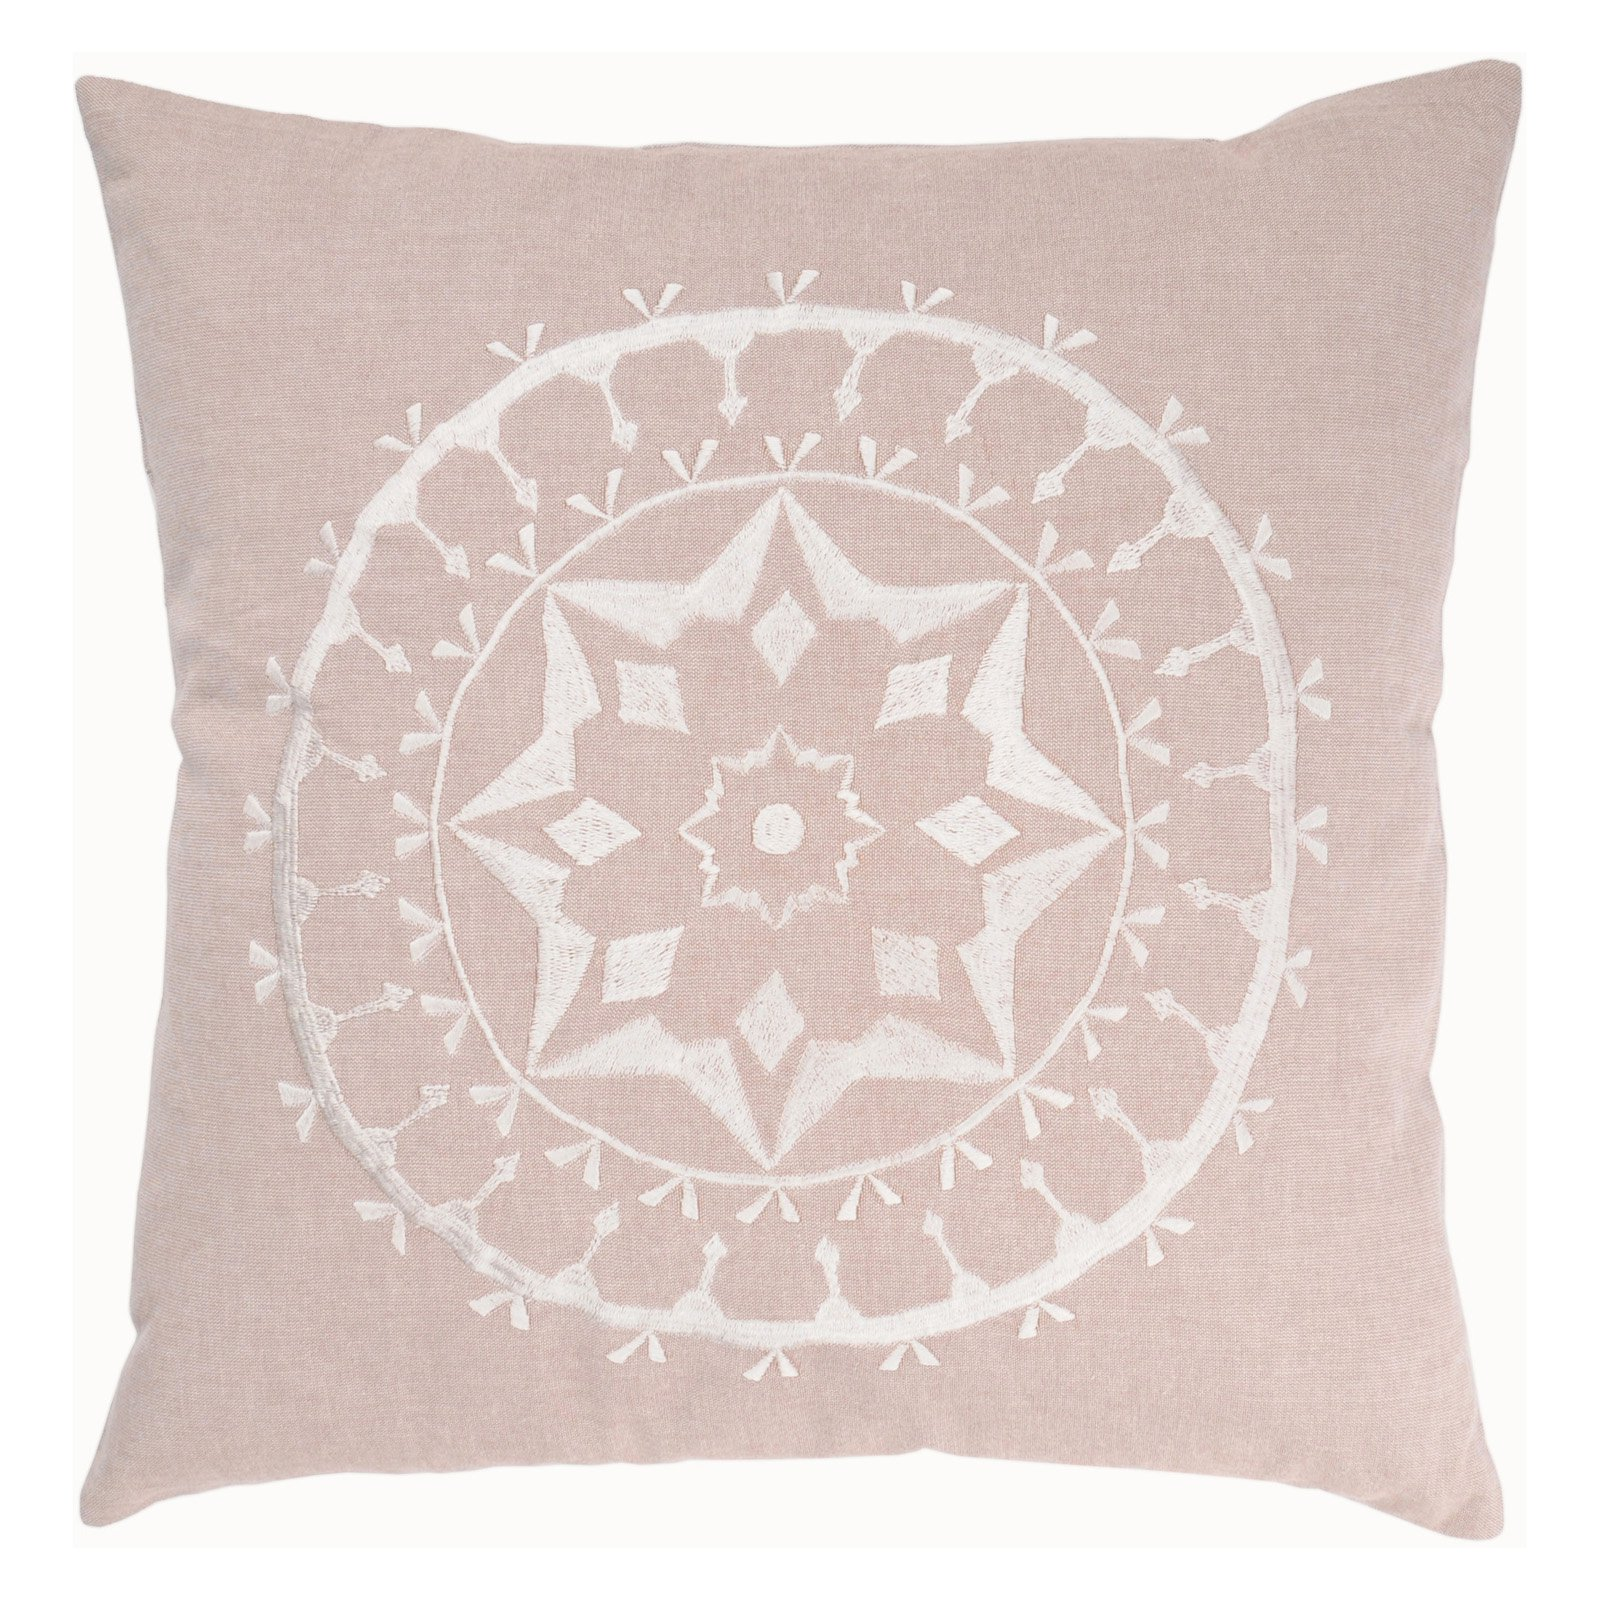 """Rizzy Home Decorative Poly Filled Throw Pillow Medallion 18""""X18"""" Light Blush"""